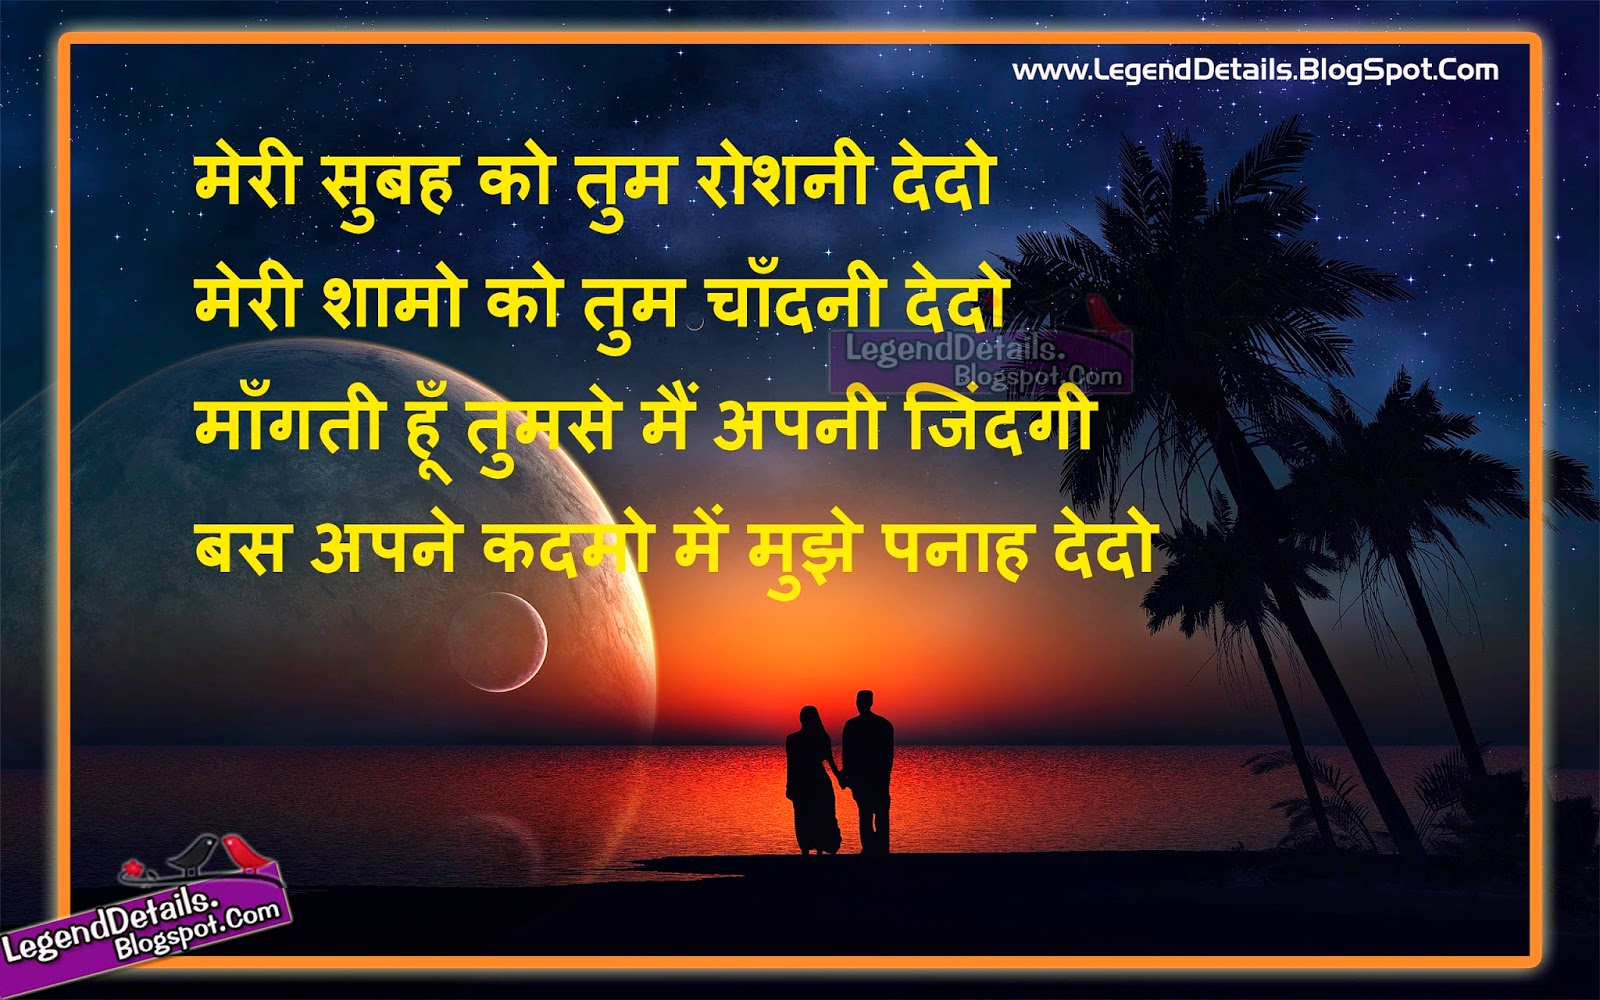 hindi-love-shayari-for-girlfriend-in-hindi-hd-wallpaper.jpg